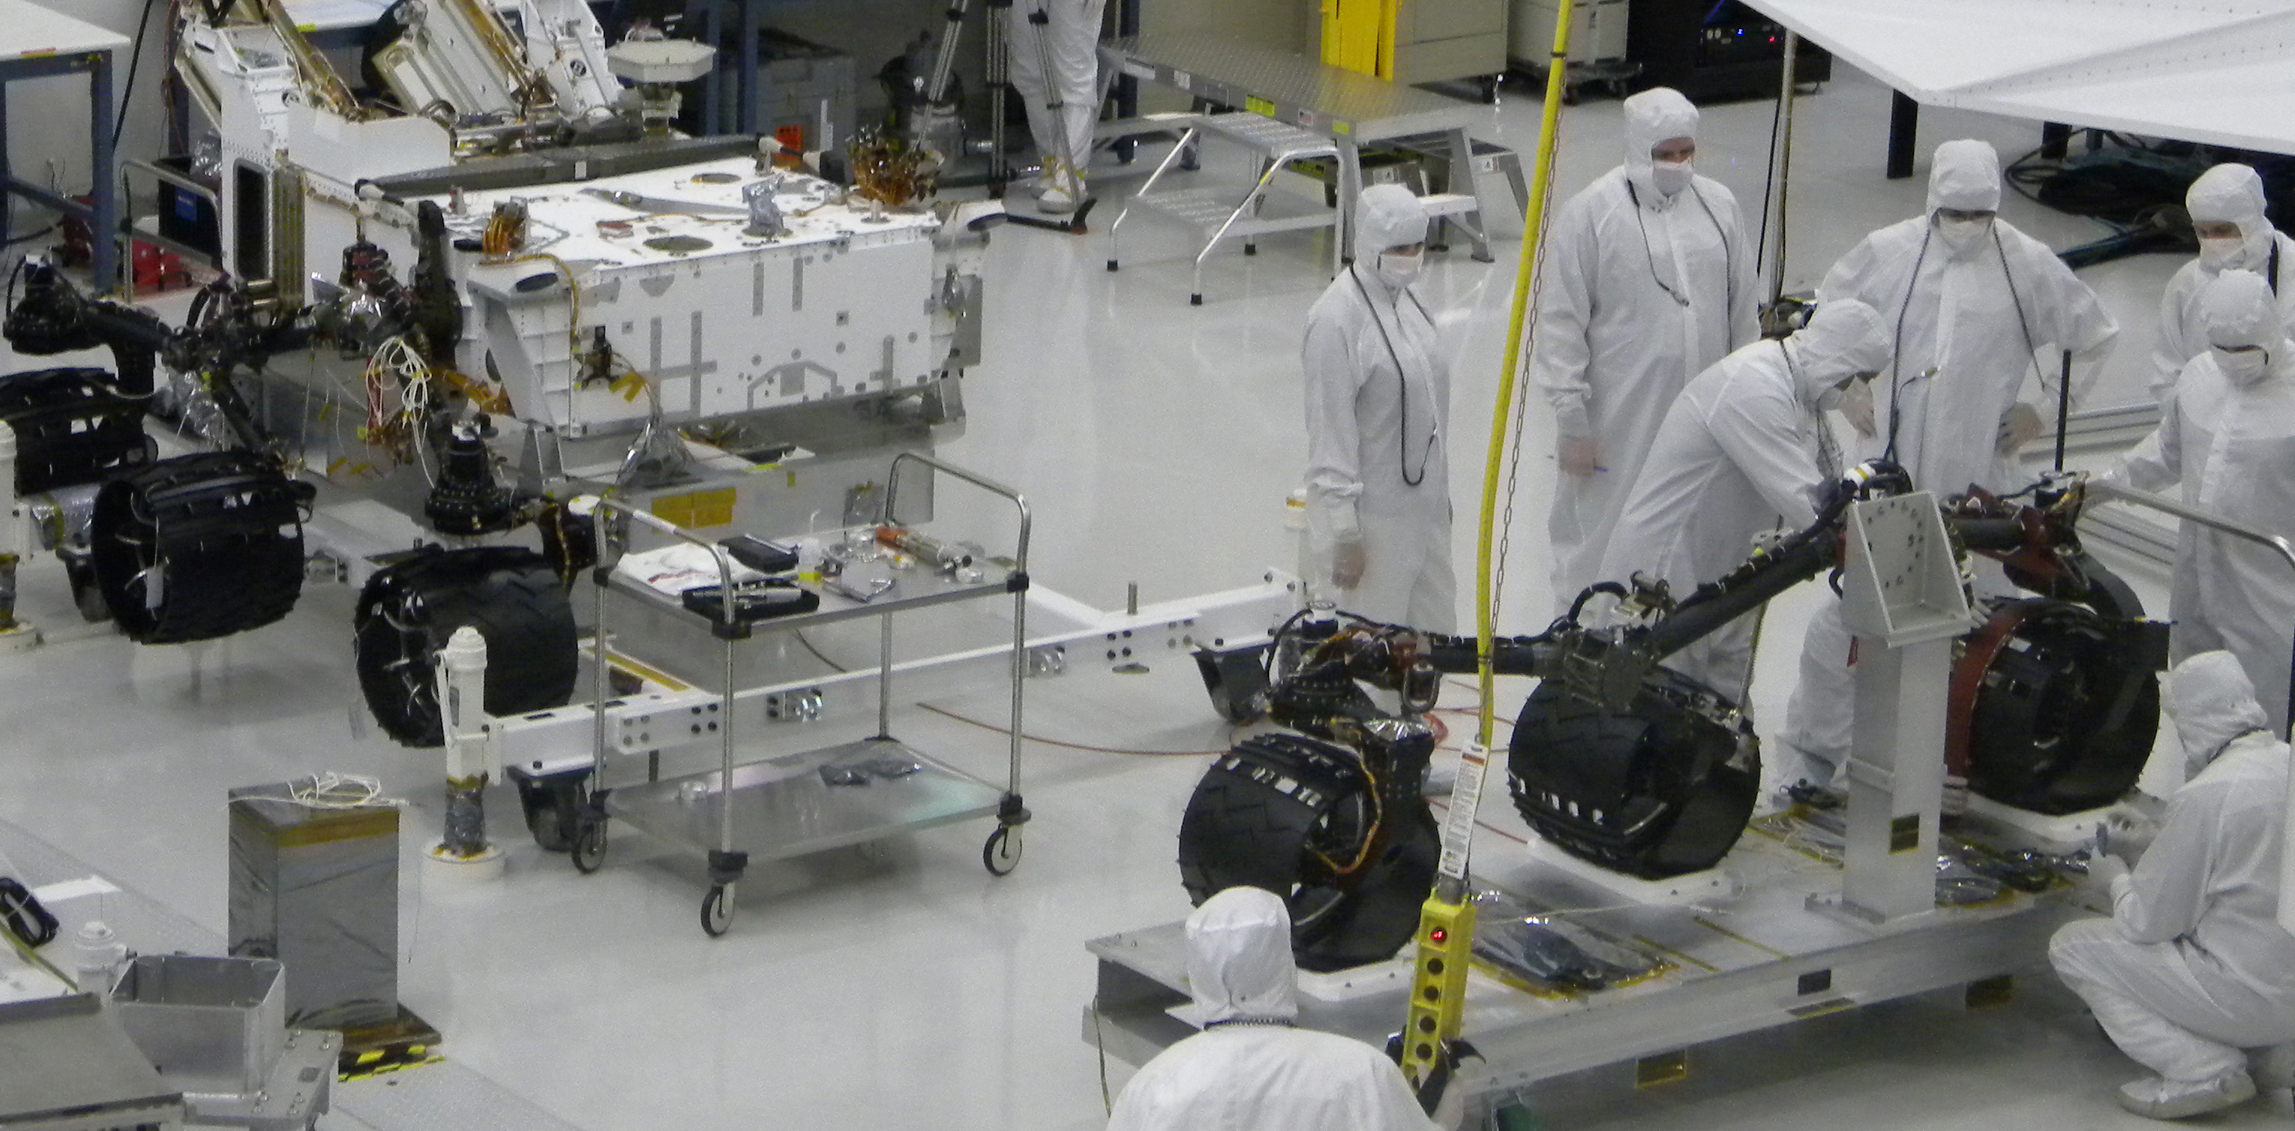 Installation of Curiosity's wheels and suspension.